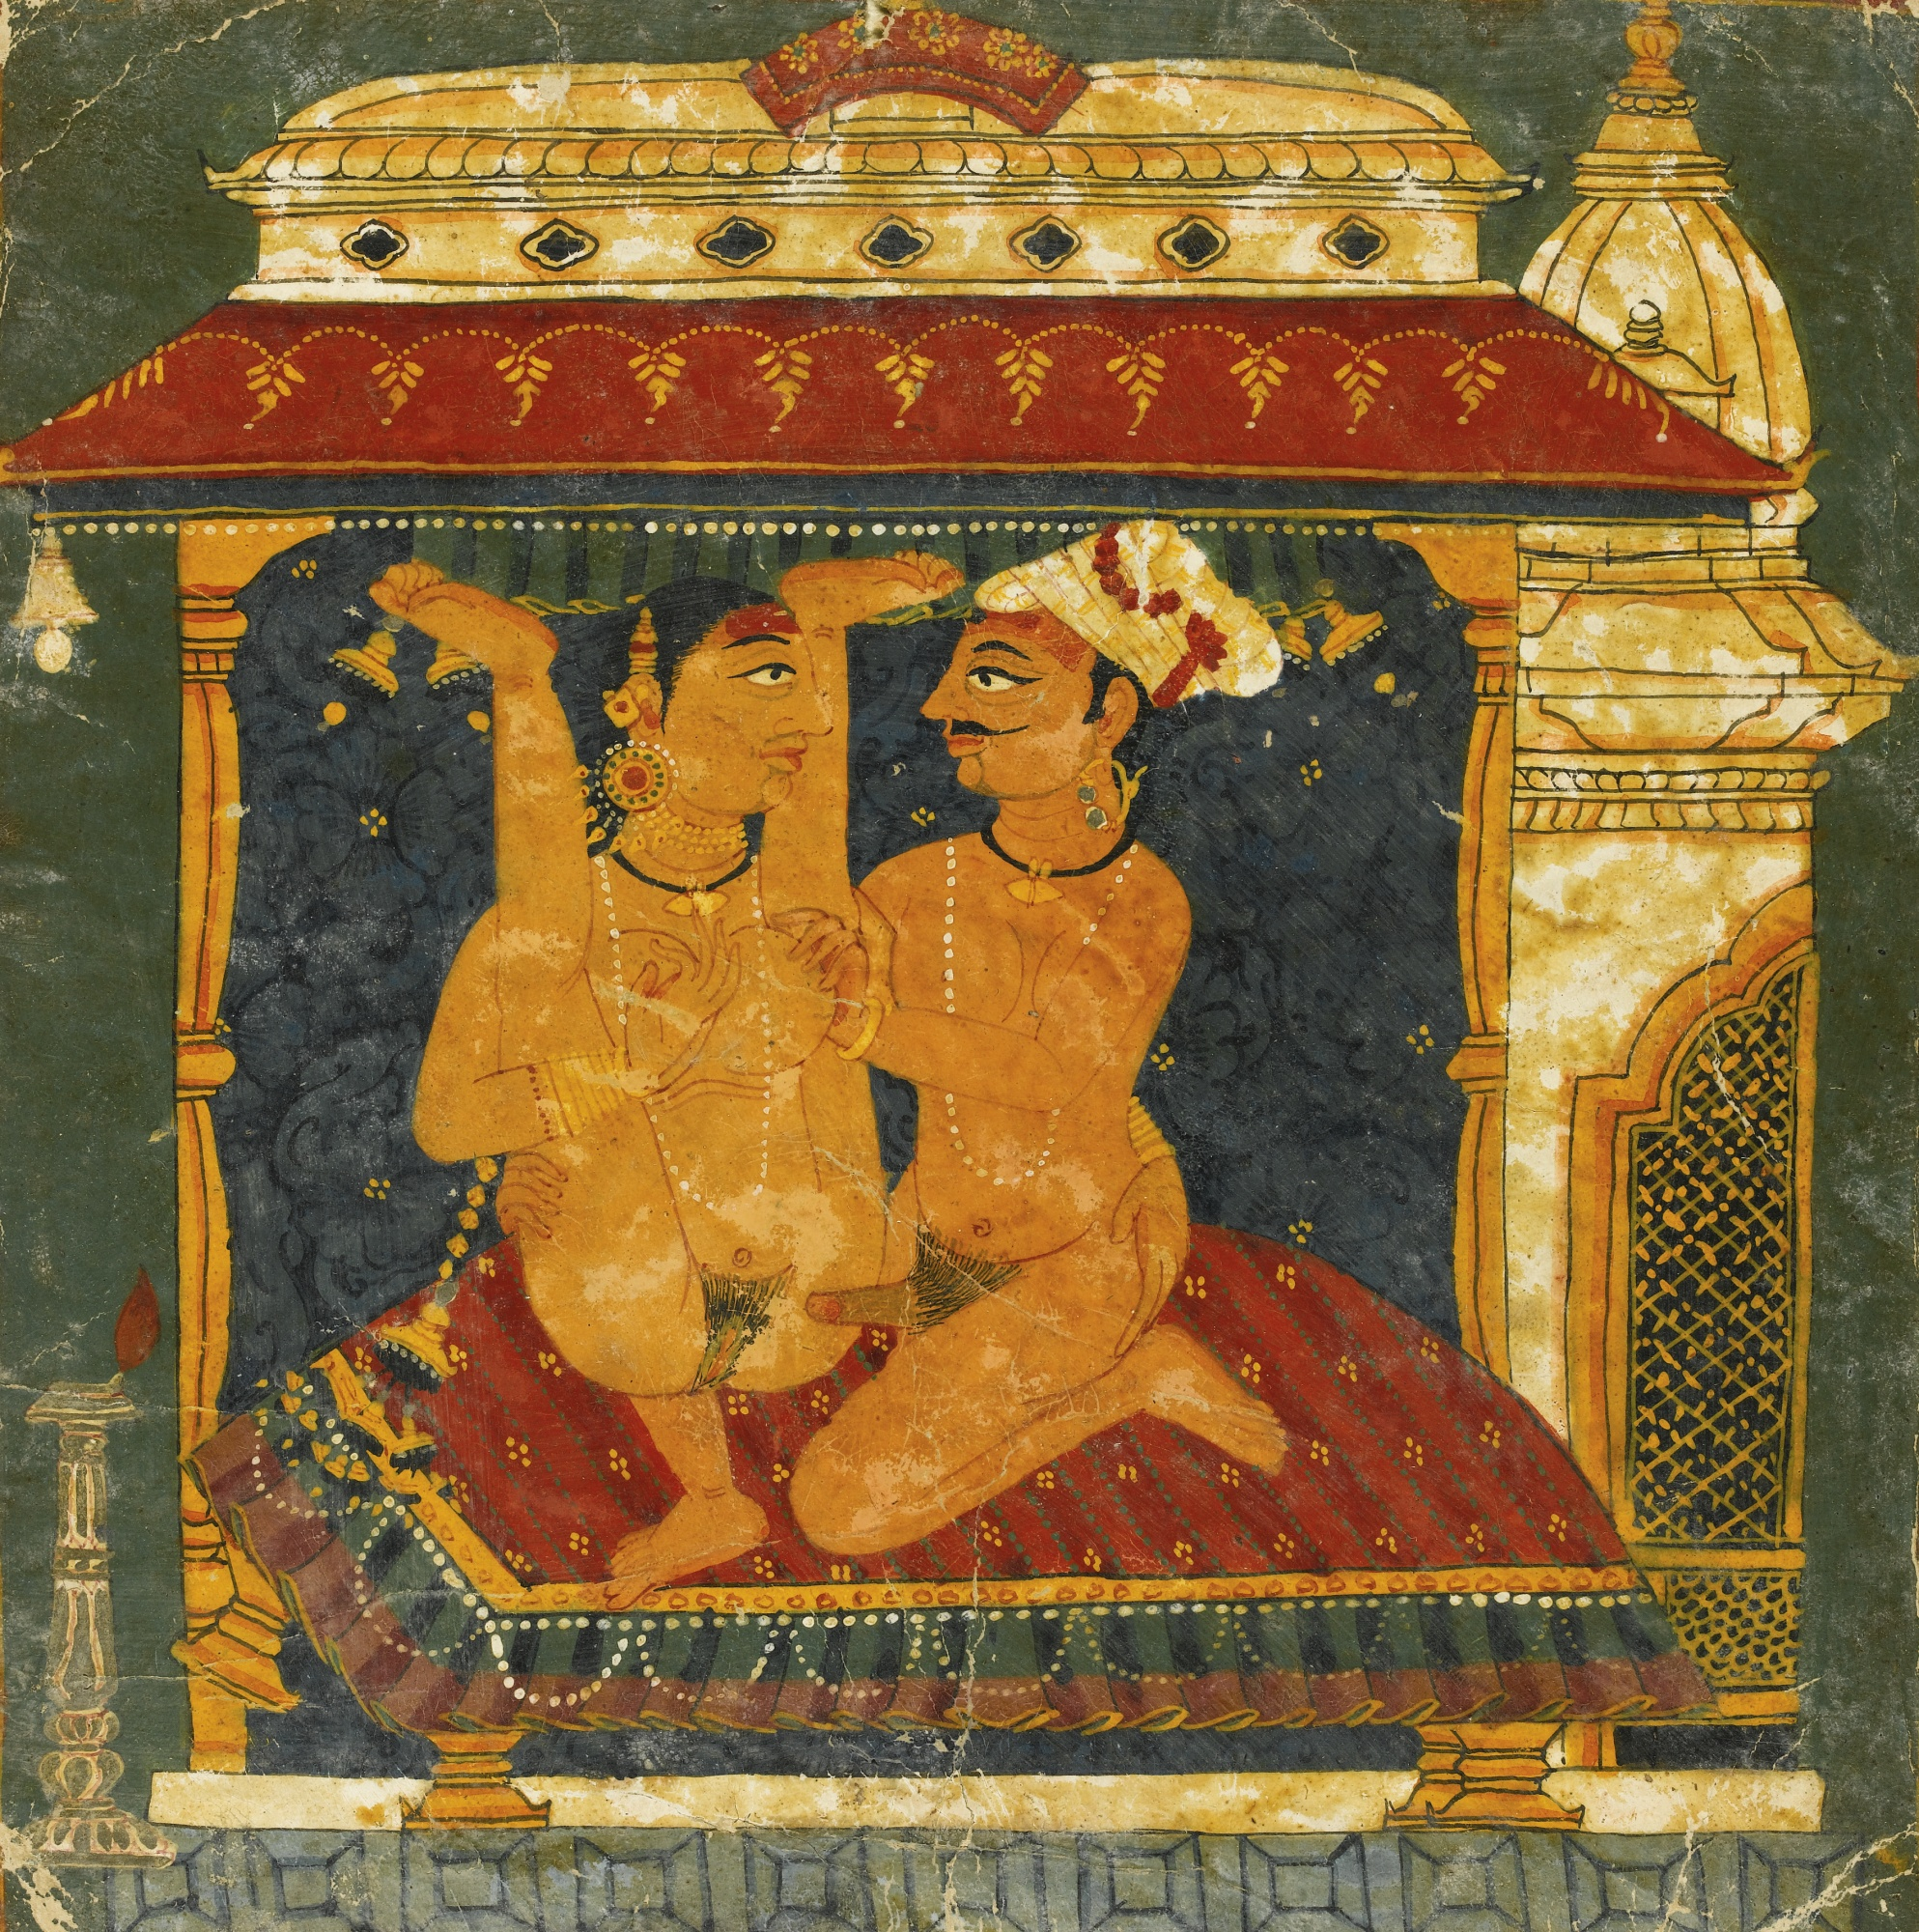 Lovers Engaged in Lovemaking on a Bed - Miniature Painting, Nepal, Bhaktapur, circa 1675